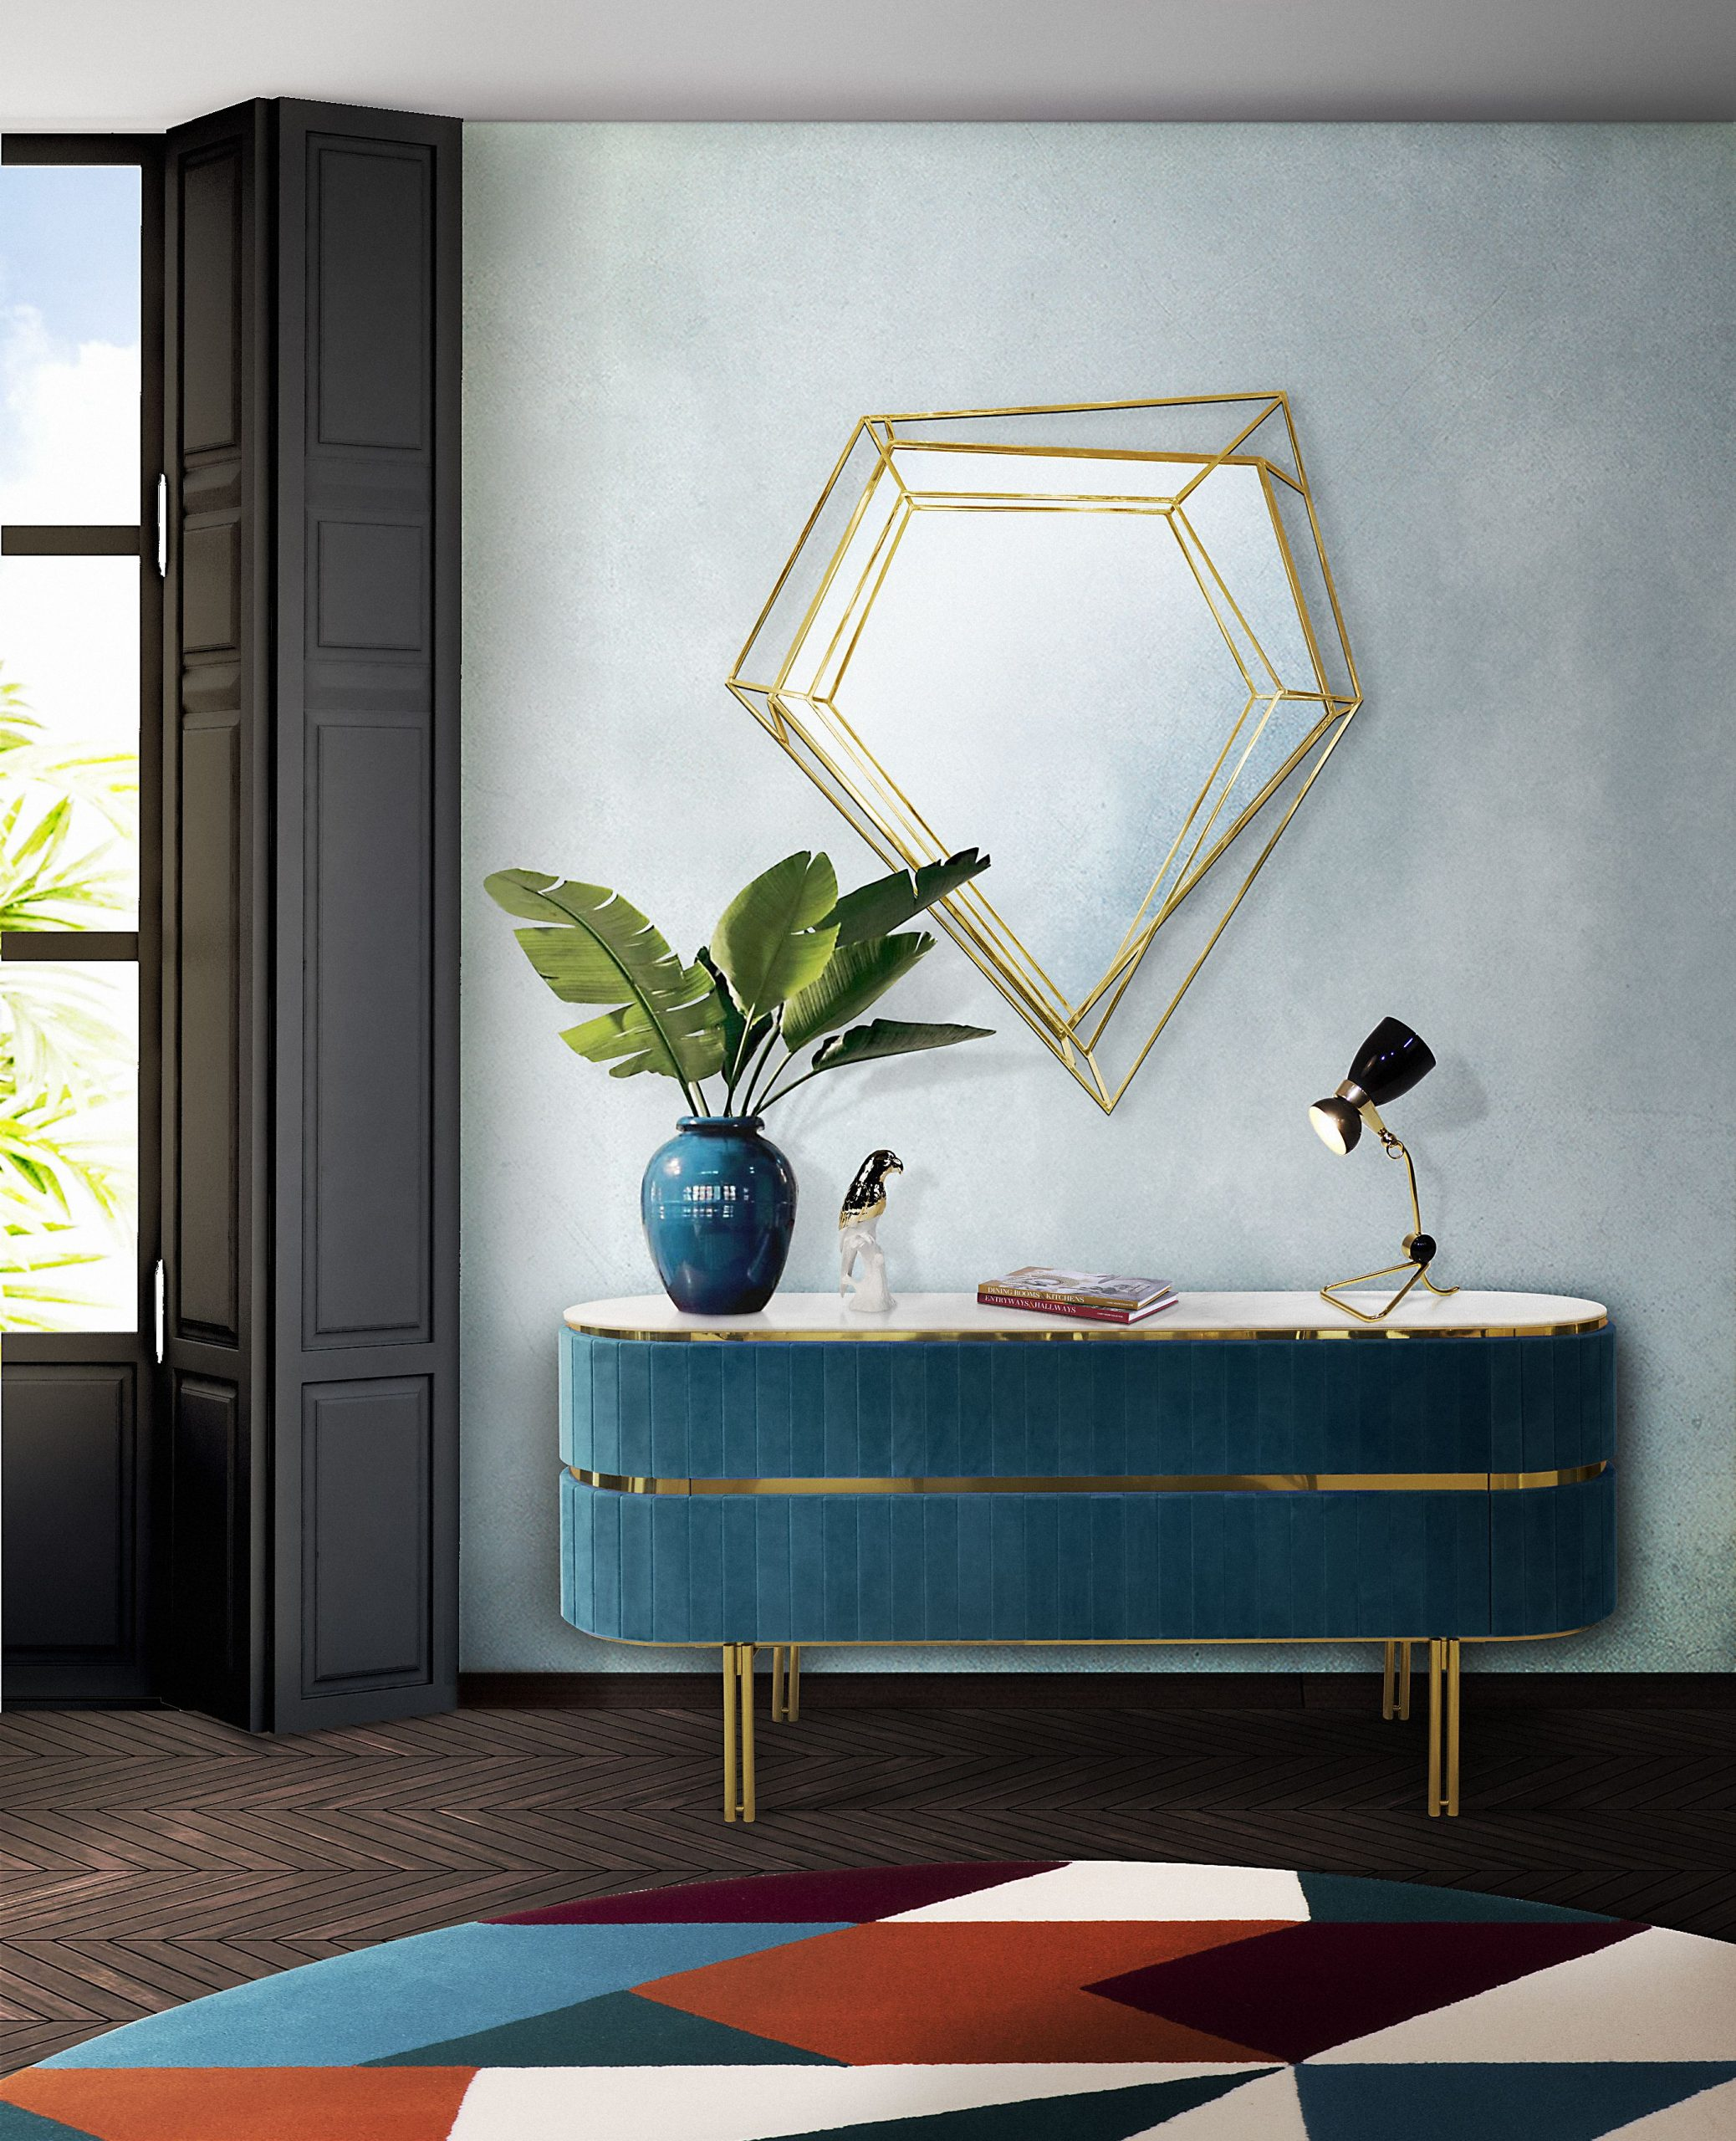 Incredible Home Design Tips to Use Mirrors! home design Home Design Tips To Use Mirrors The Right Way! deisgn tips 3 scaled